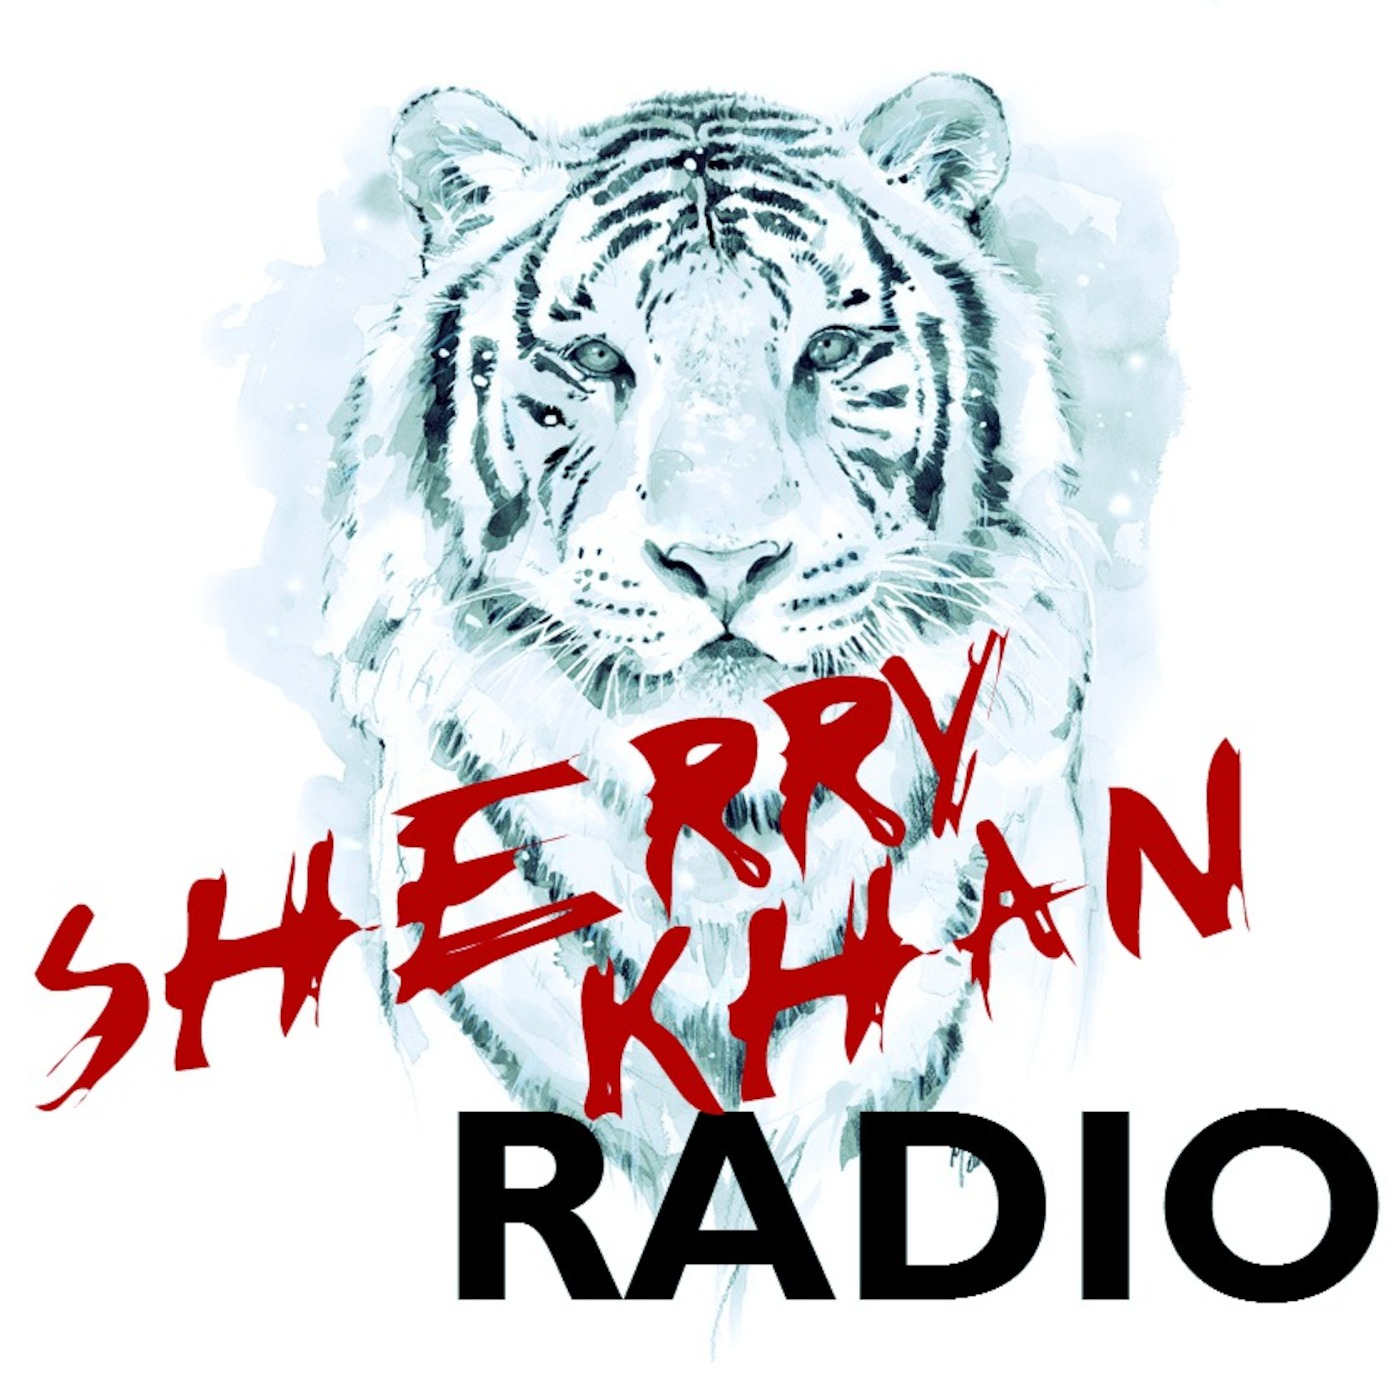 Sherry Khan Radio